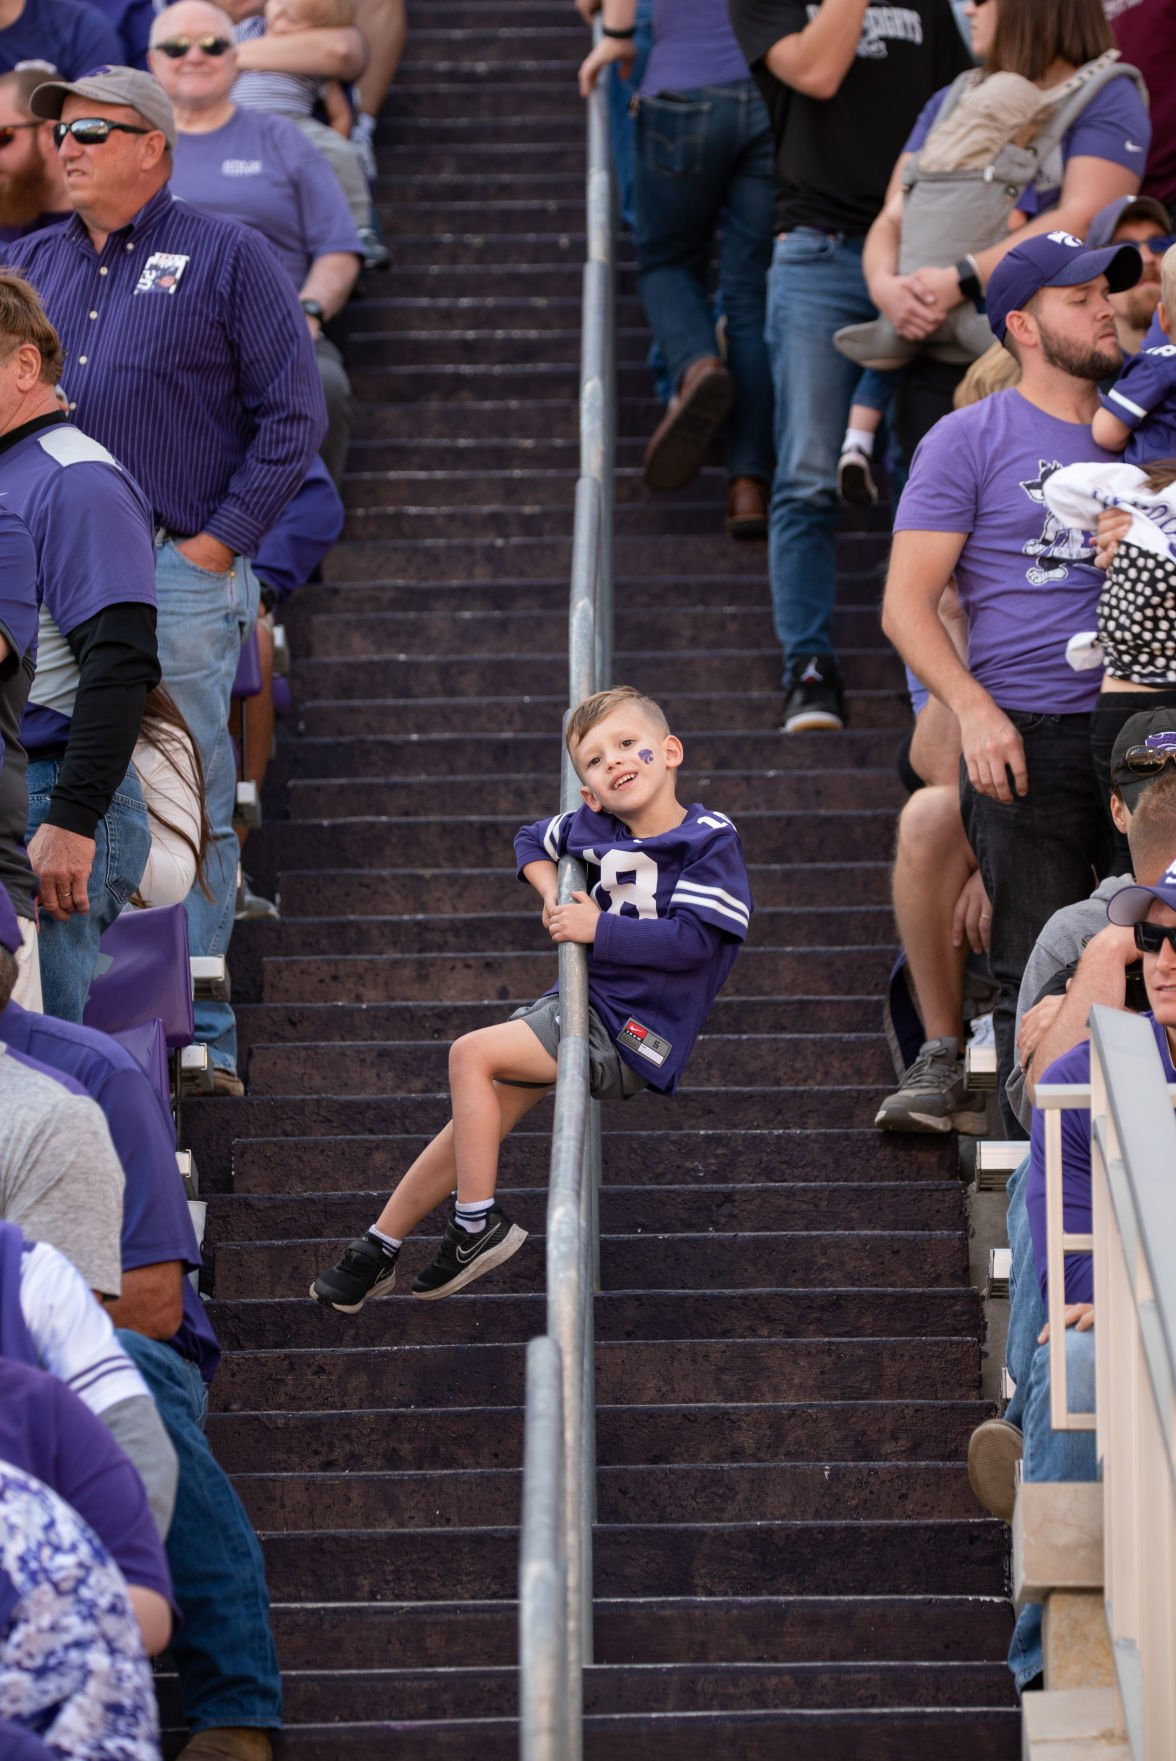 K-State fan Rex Calhoon